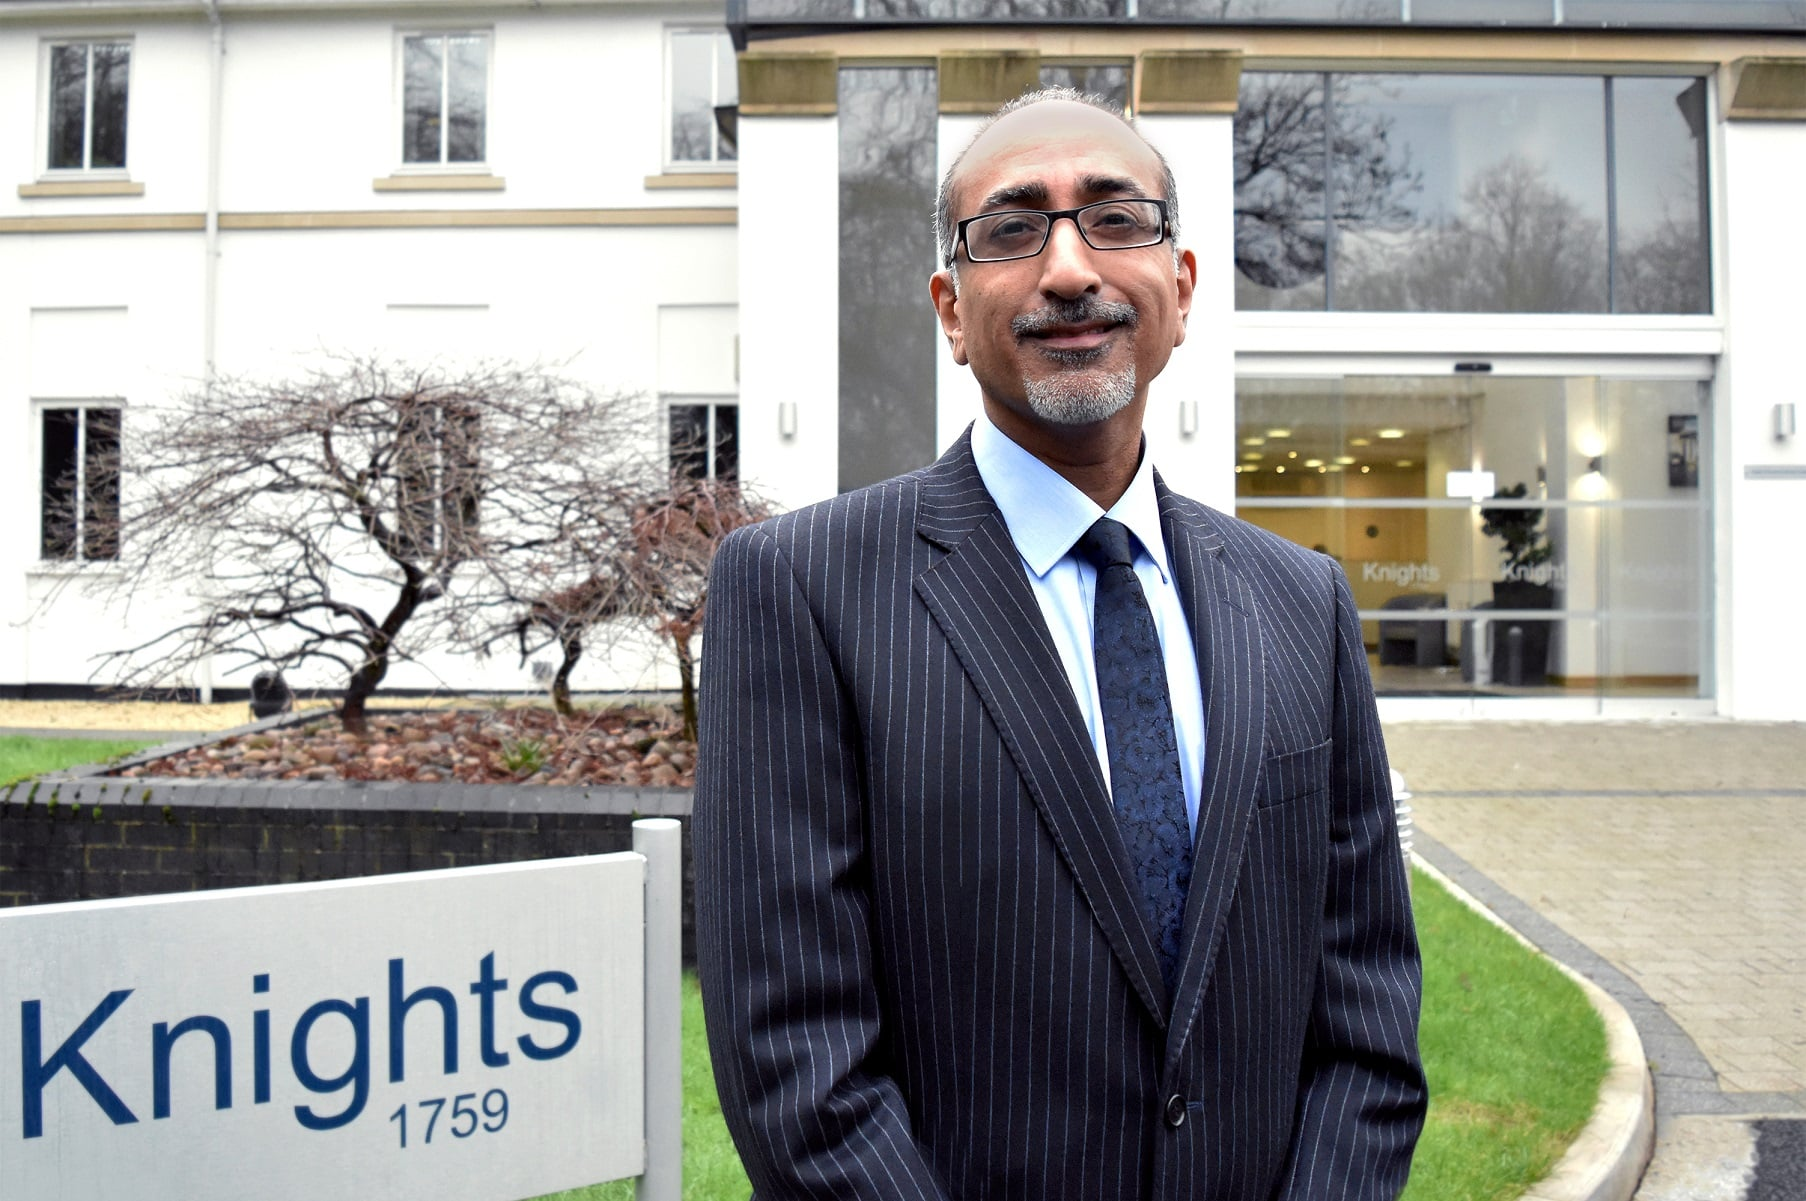 One of the region's most highly-regarded lawyers, Zaf Bashir, joins Knights Professional Services